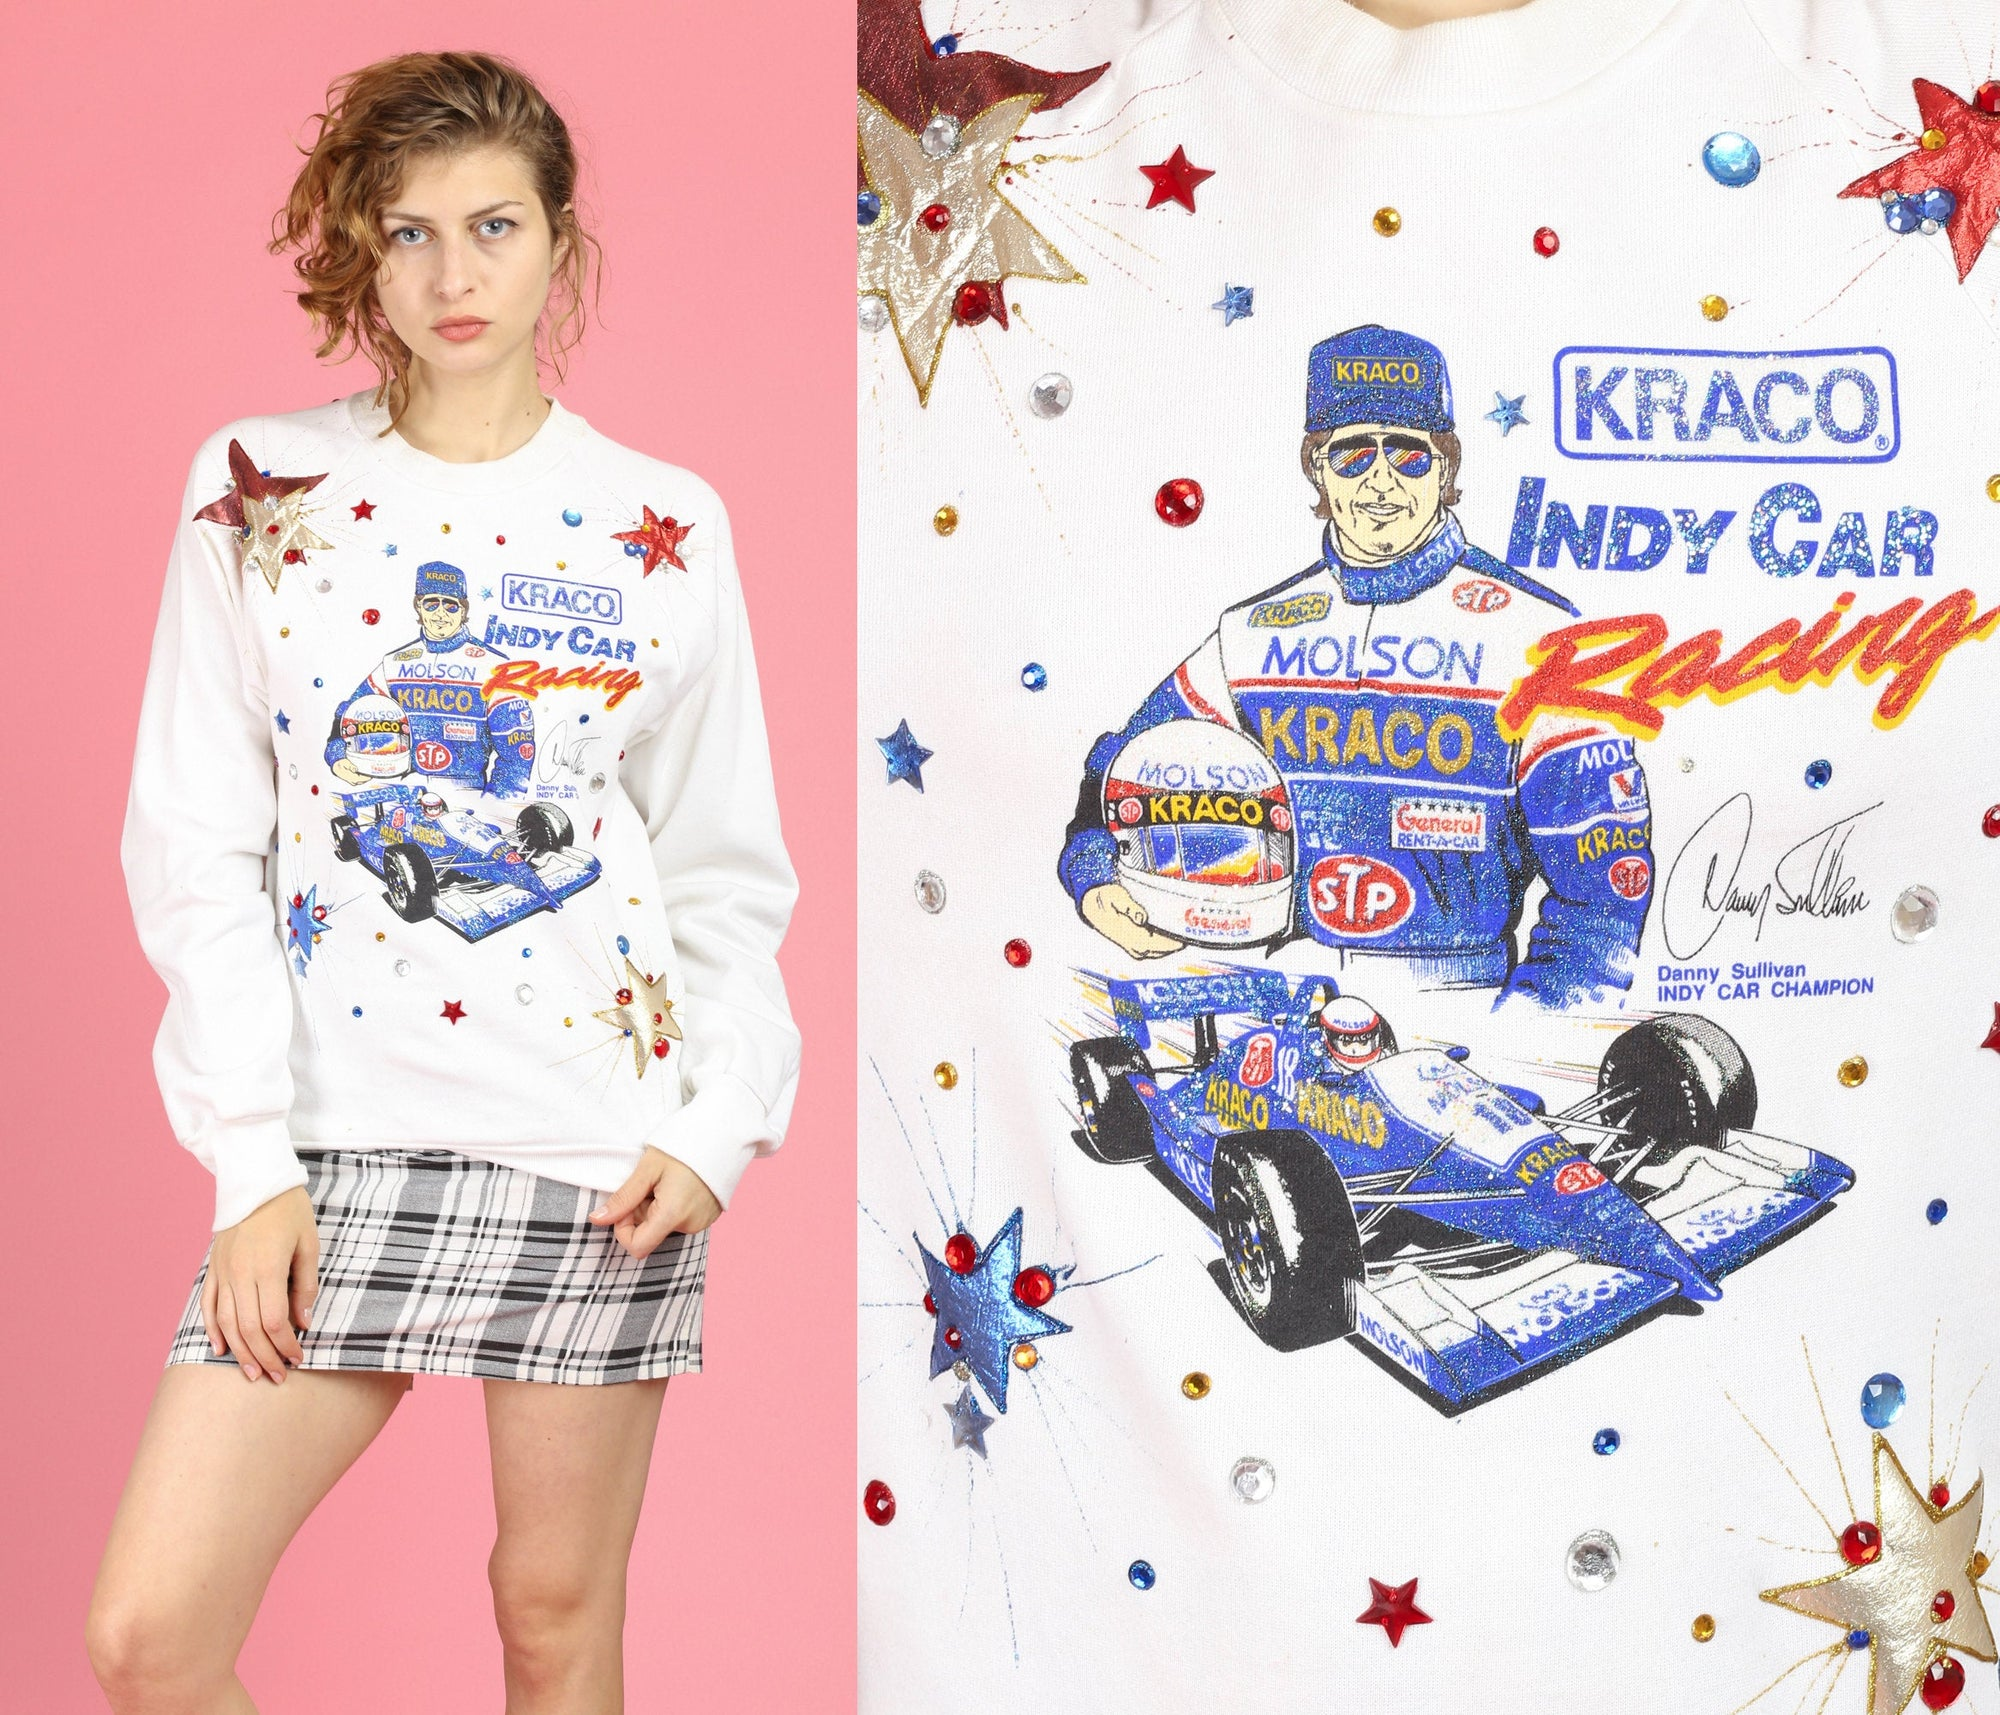 90s IndyCar Grand Prix Danny Sullivan Embellished Sweatshirt - Medium